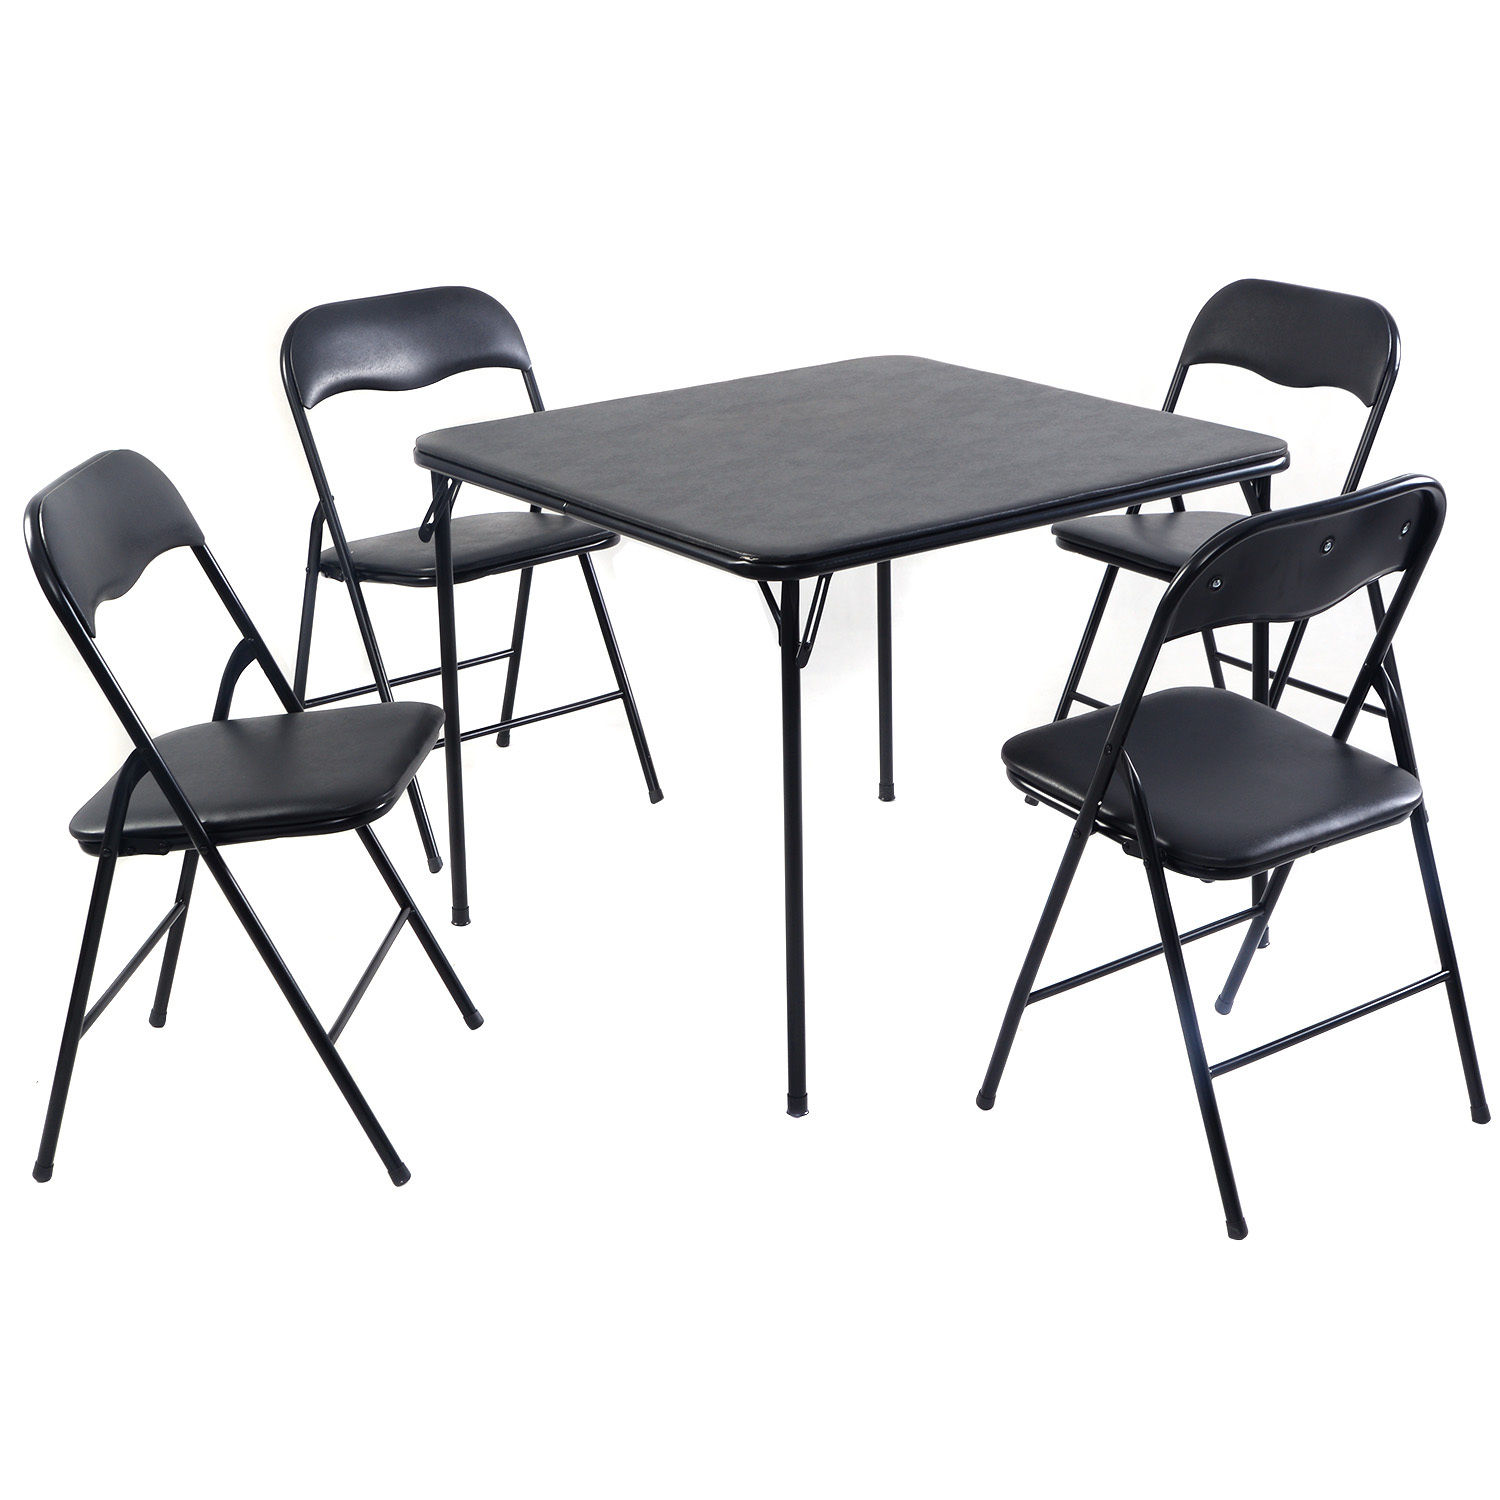 Costway 5PC Black Folding Table Chair Set Guest Games Dining Room